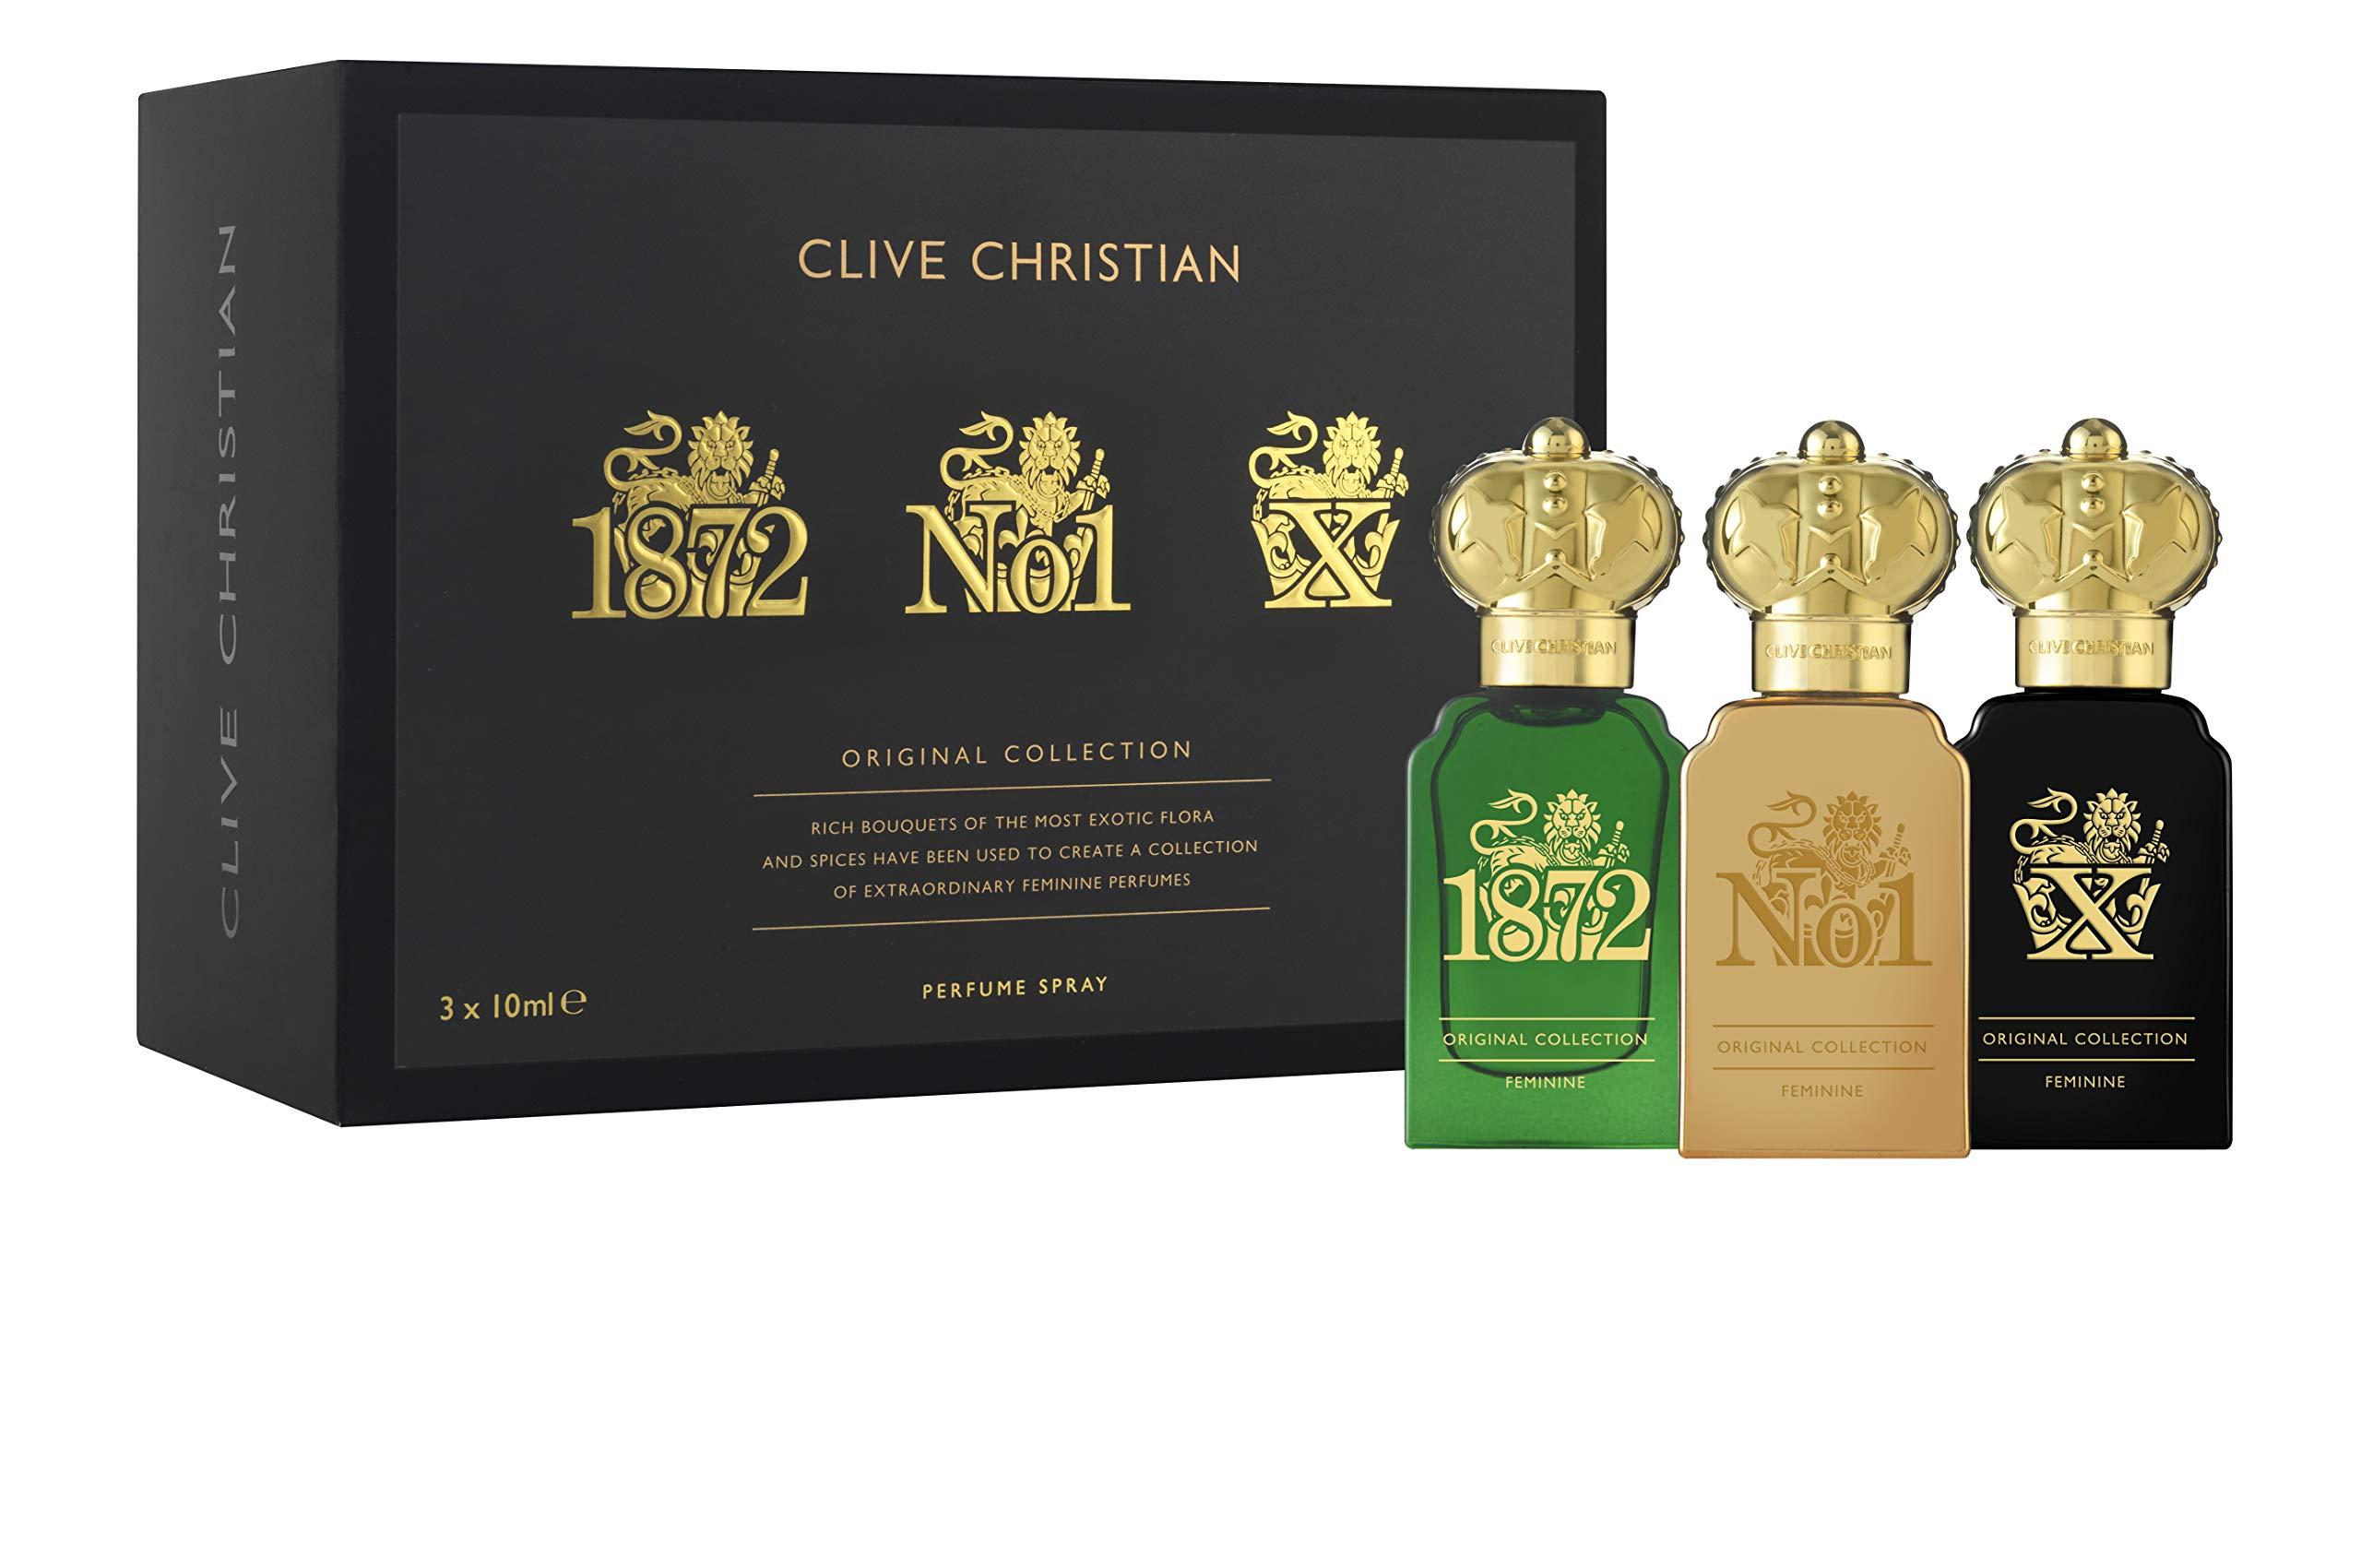 Clive Christian Perfume Traveler Set Masculine Collection for Men 3 x 10 ml